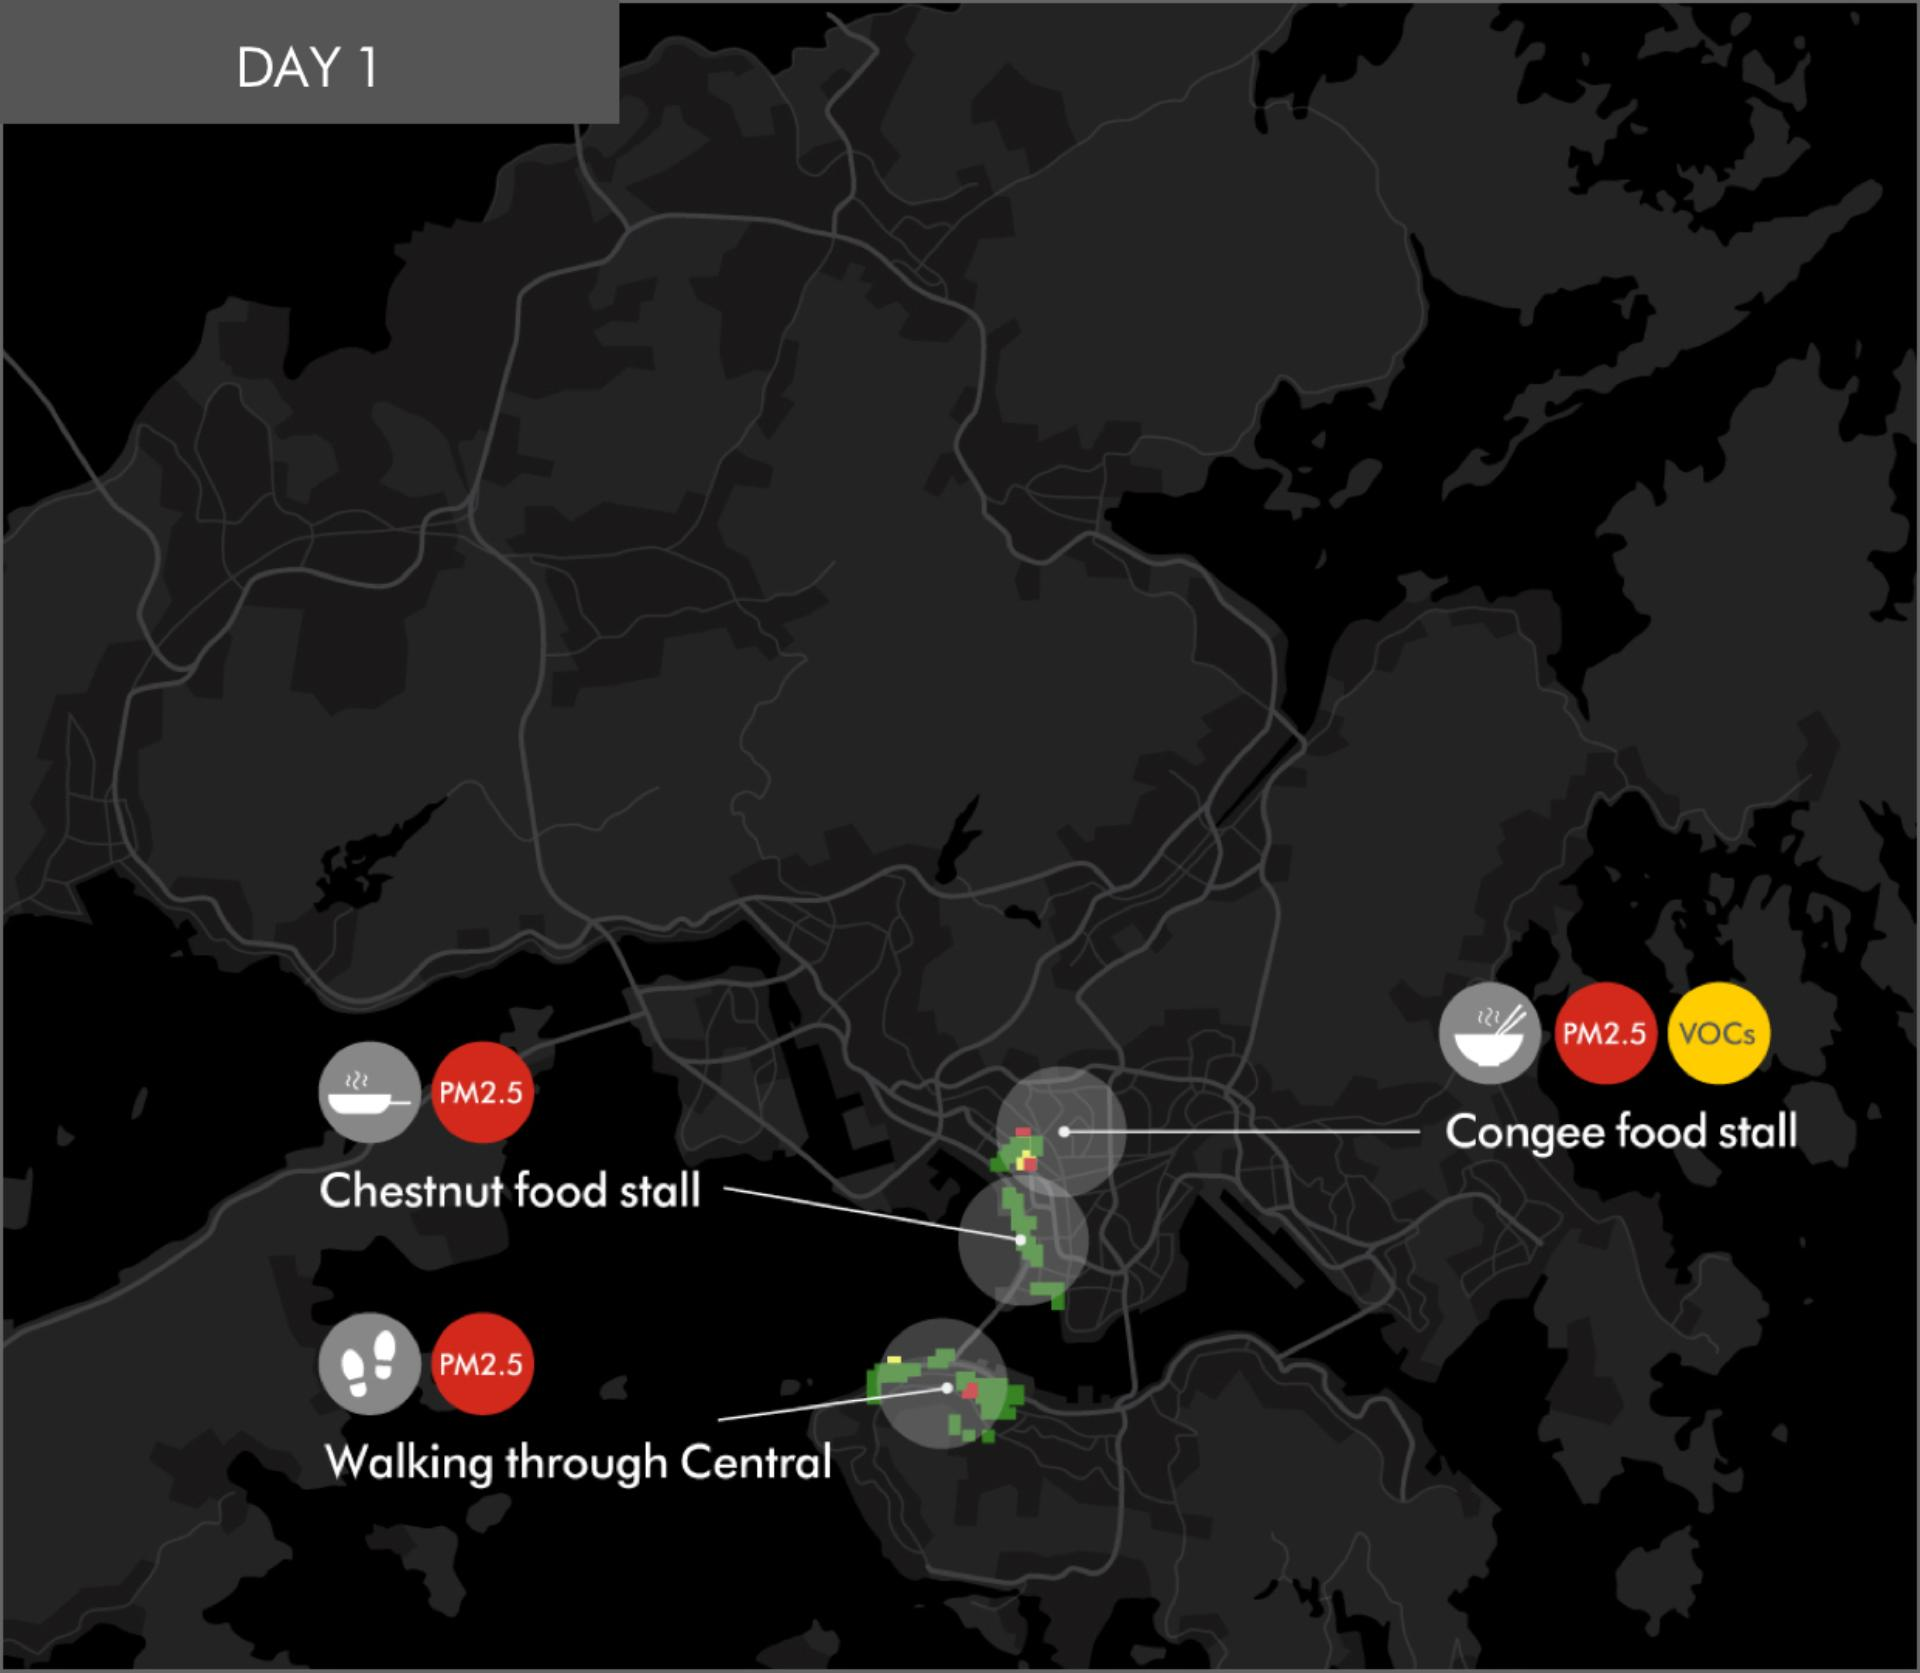 HK map for Melody's Day 1 trip